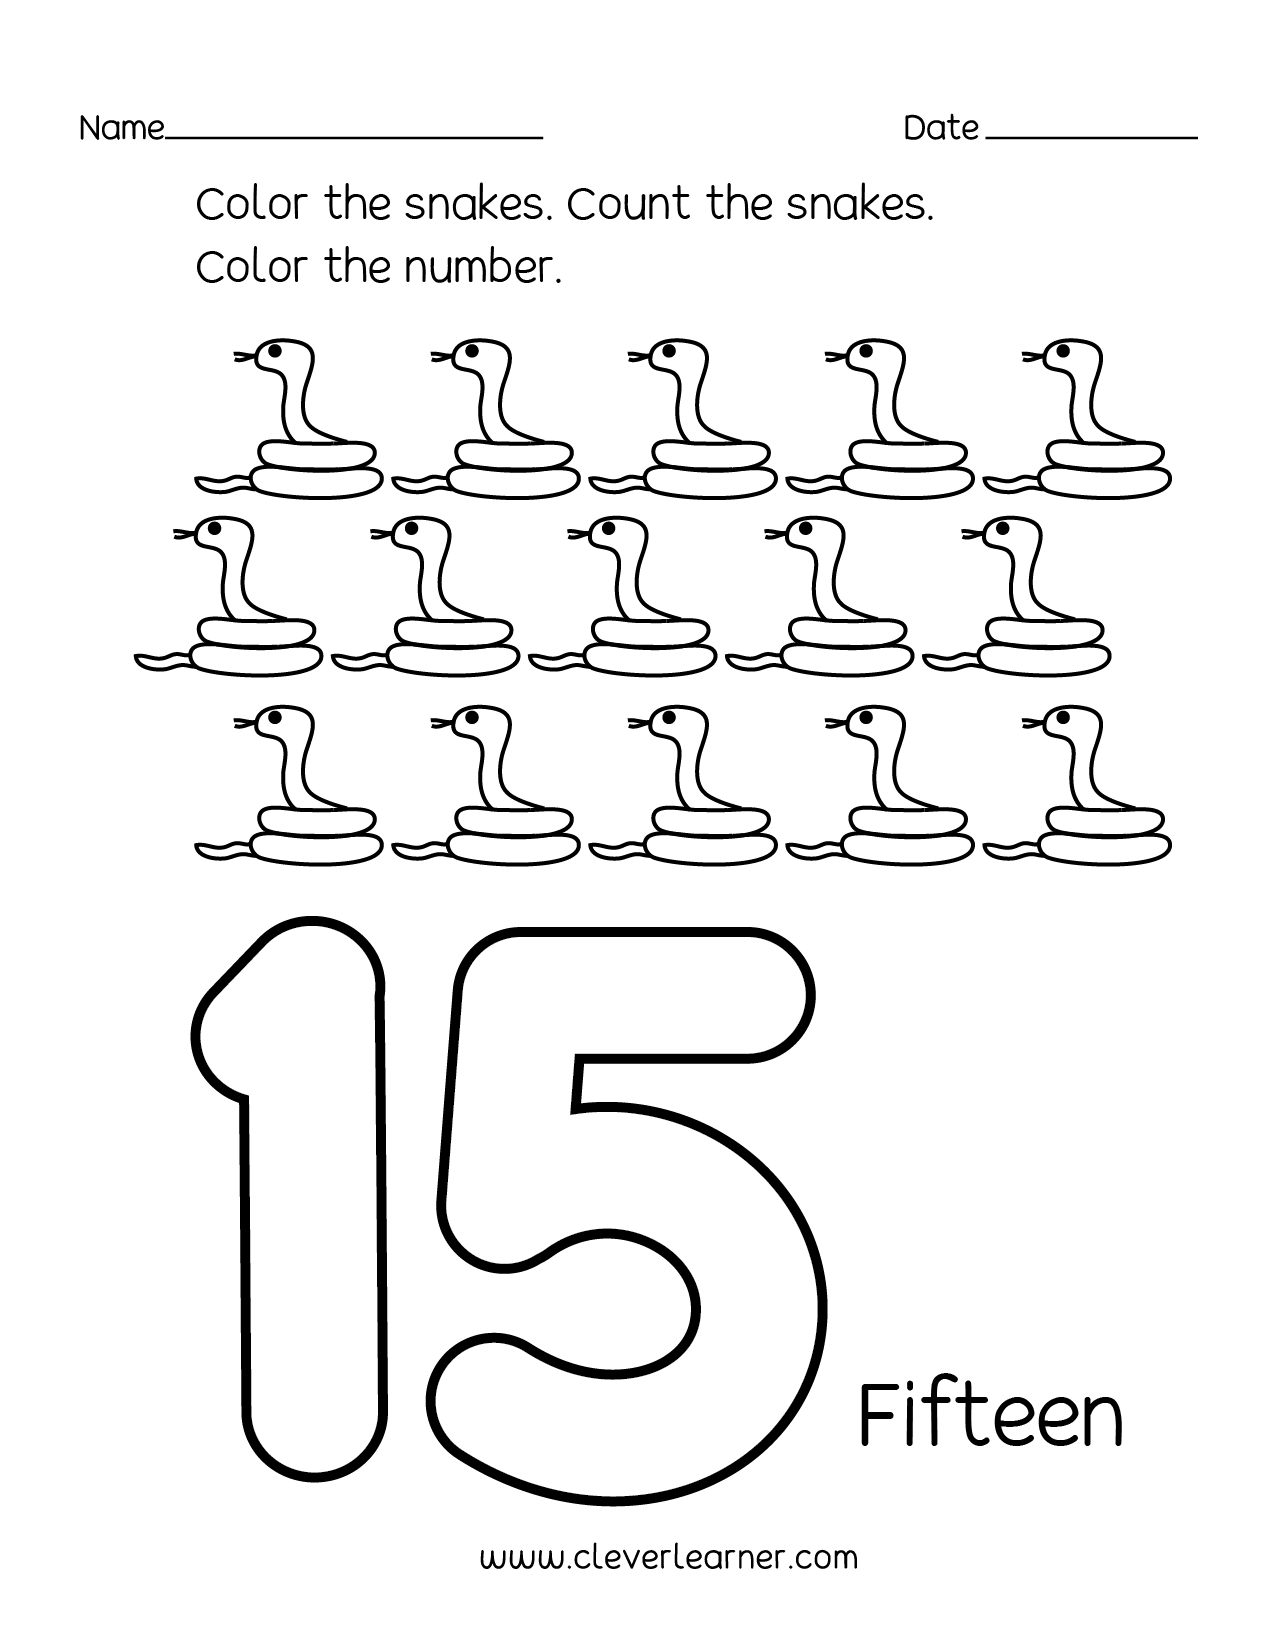 11 25 For Number Recognition Preschool Worksheet